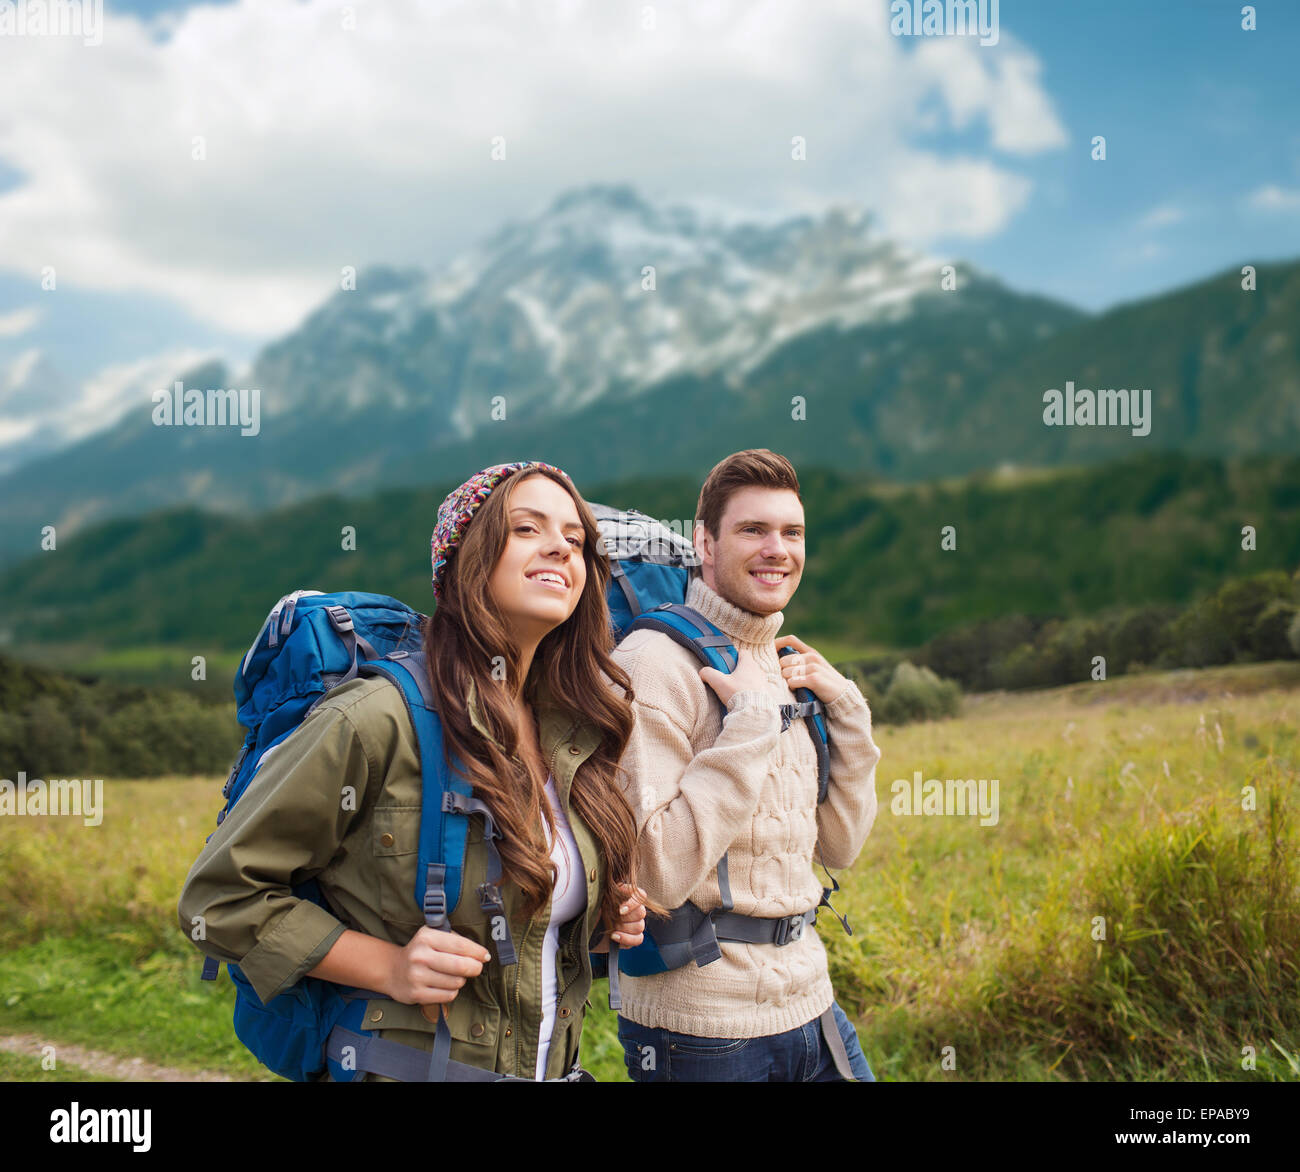 smiling couple with backpacks hiking - Stock Image